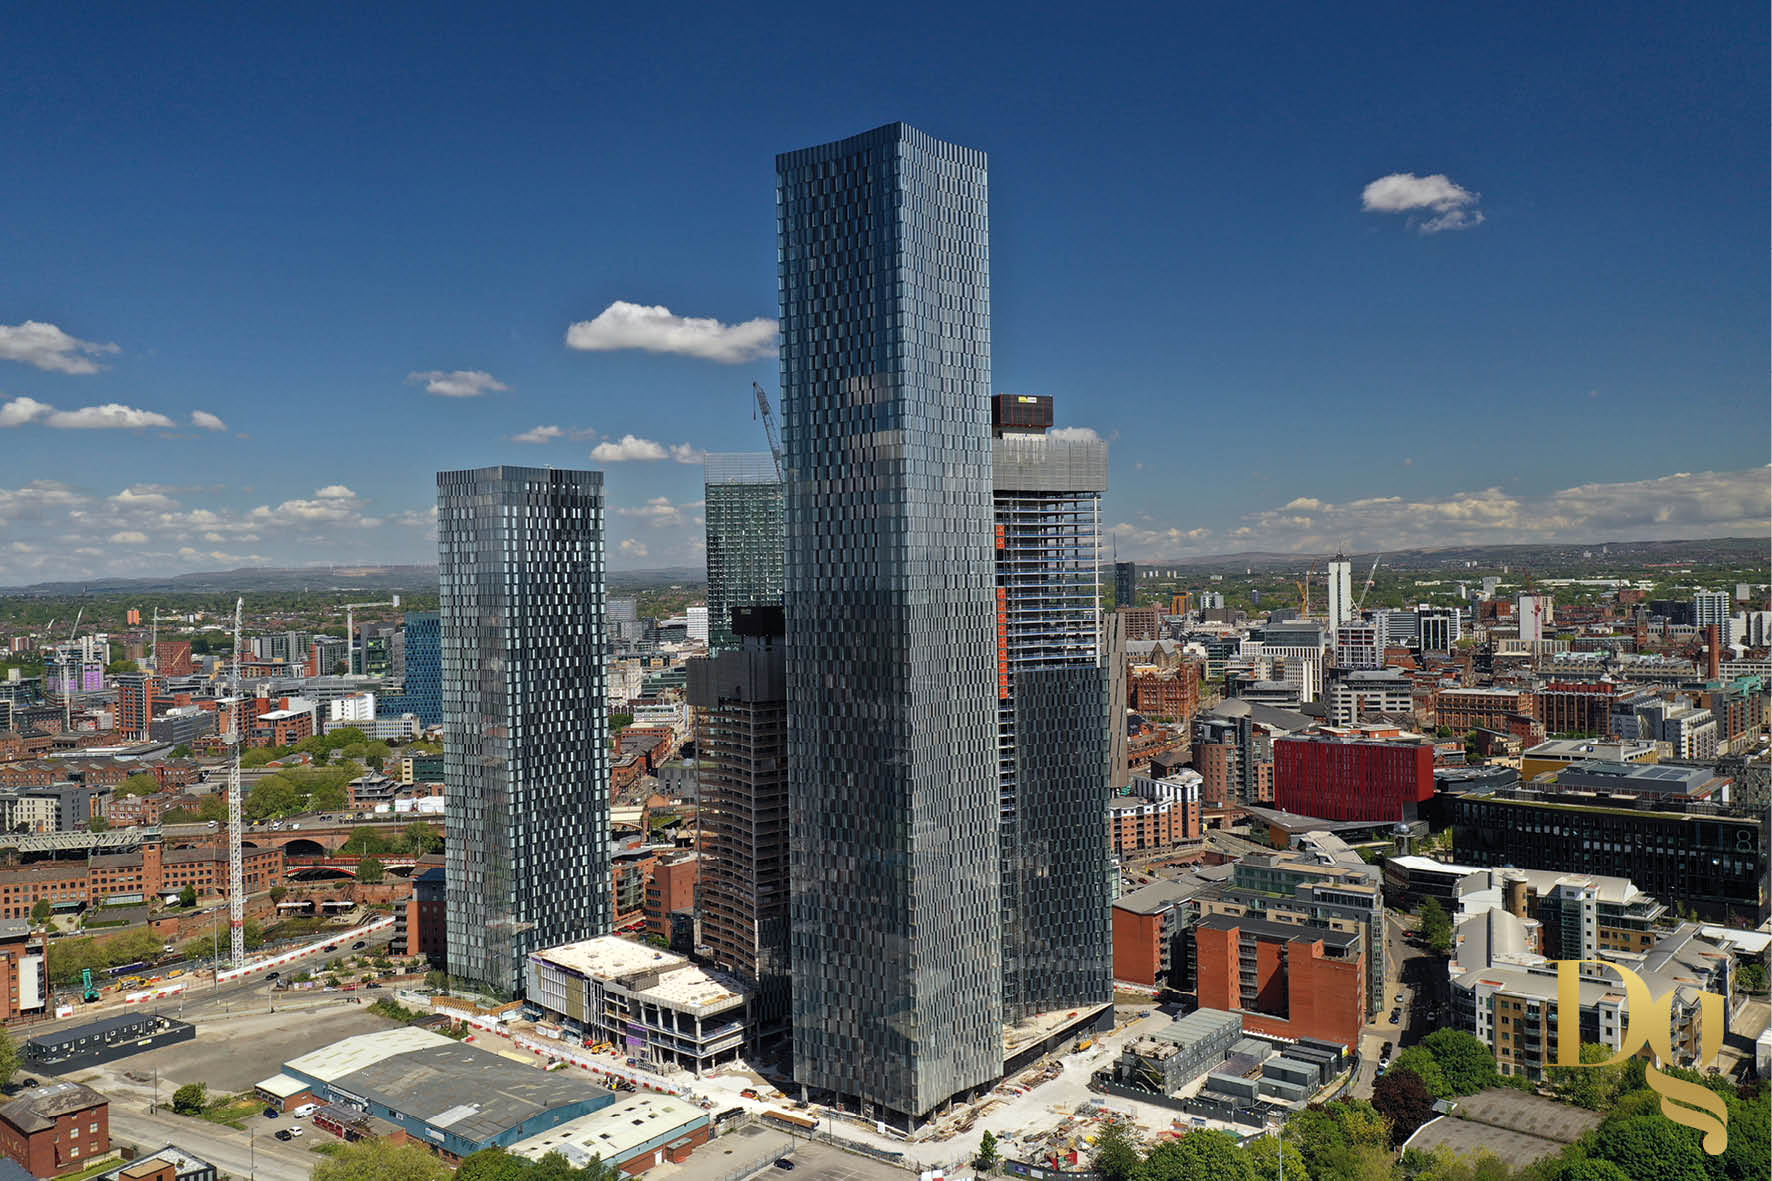 deansgate_square_latest_build_4.jpg